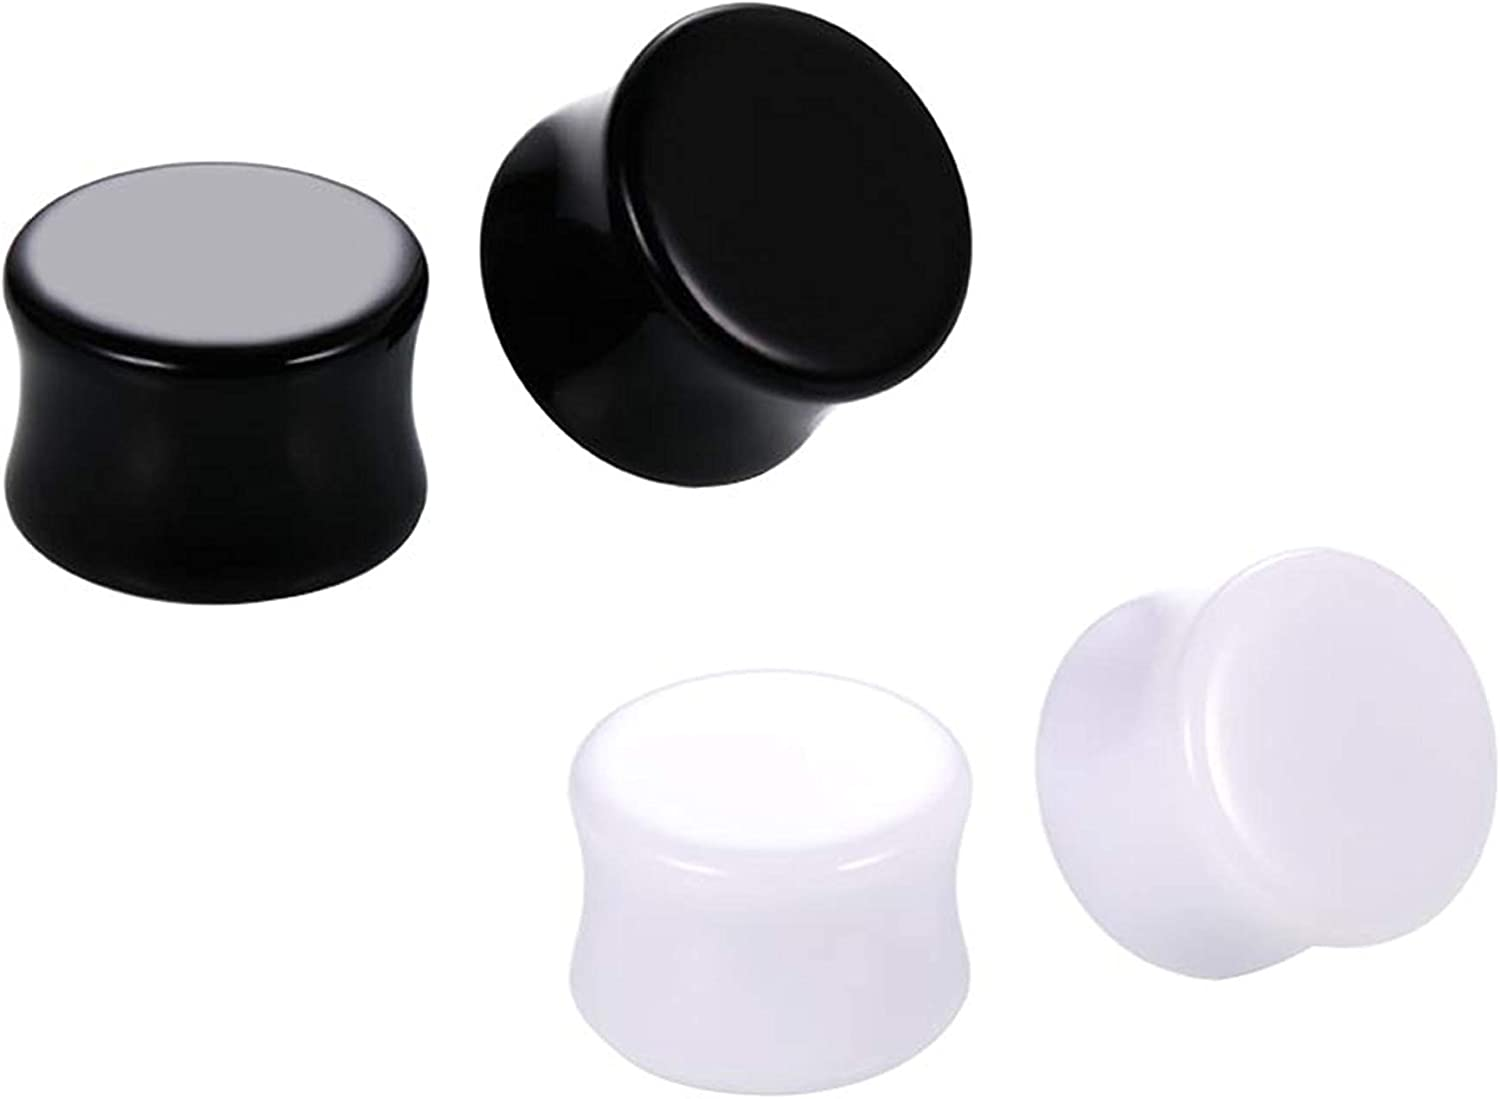 HQLA 2 Pairs White/Black Solid Acrylic Ear Plugs Flesh Tunnels Double Flared Expander Stretcher Piercing Jewelry